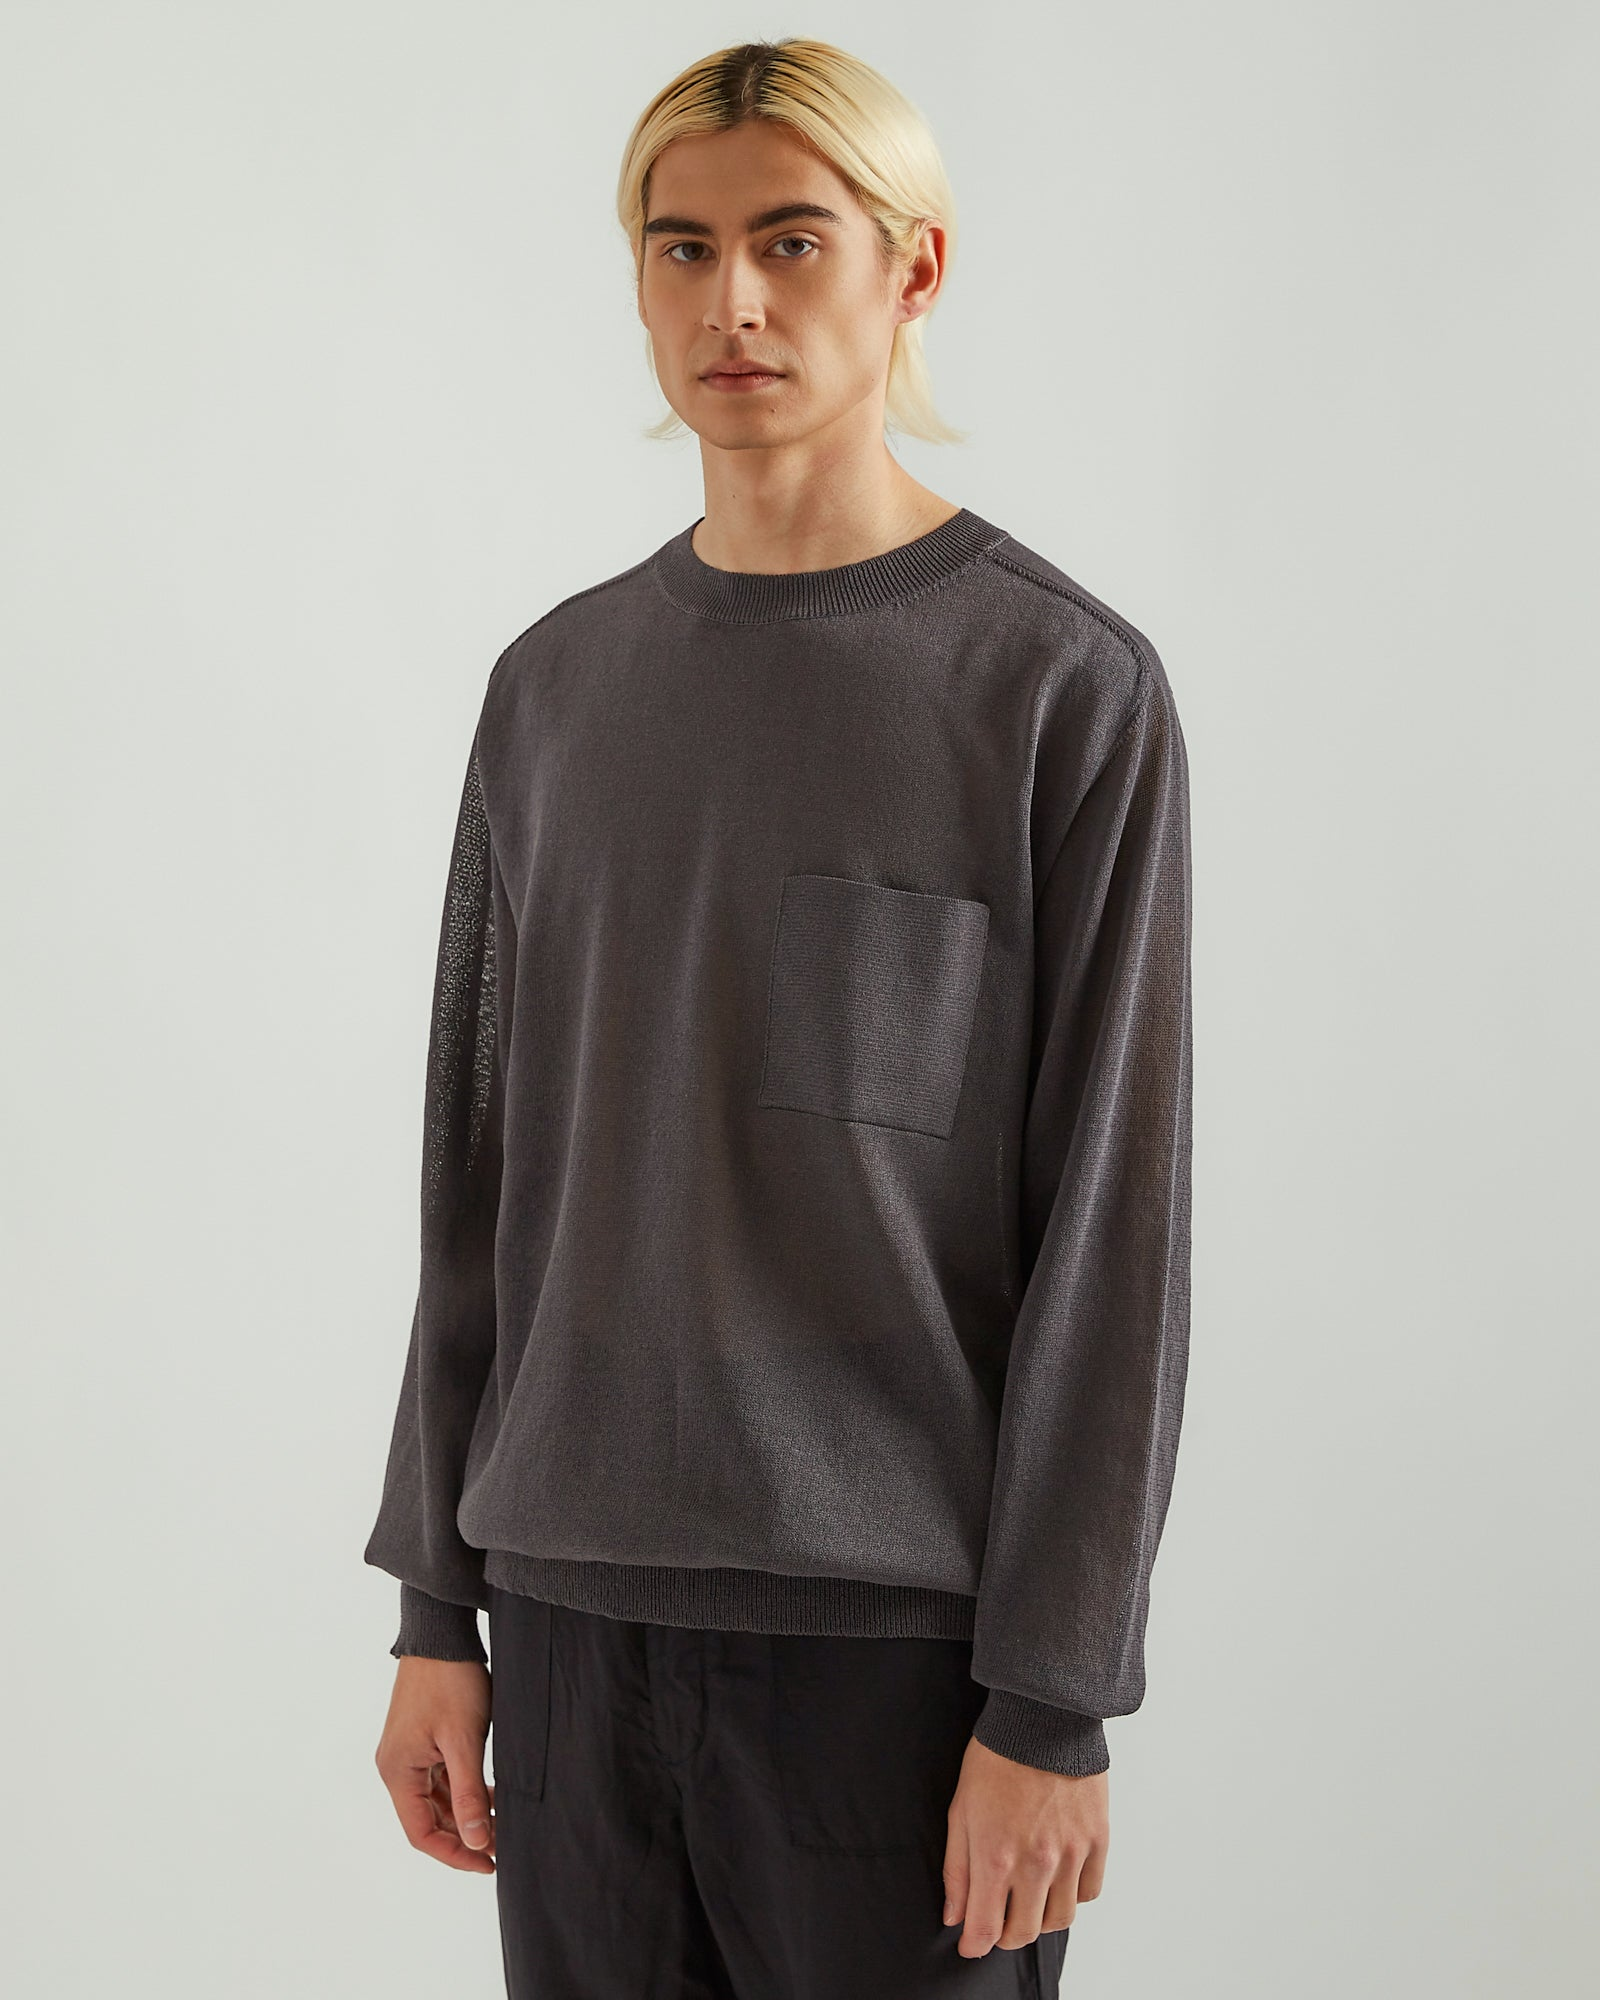 Paper Blend Sweater in Charcoal